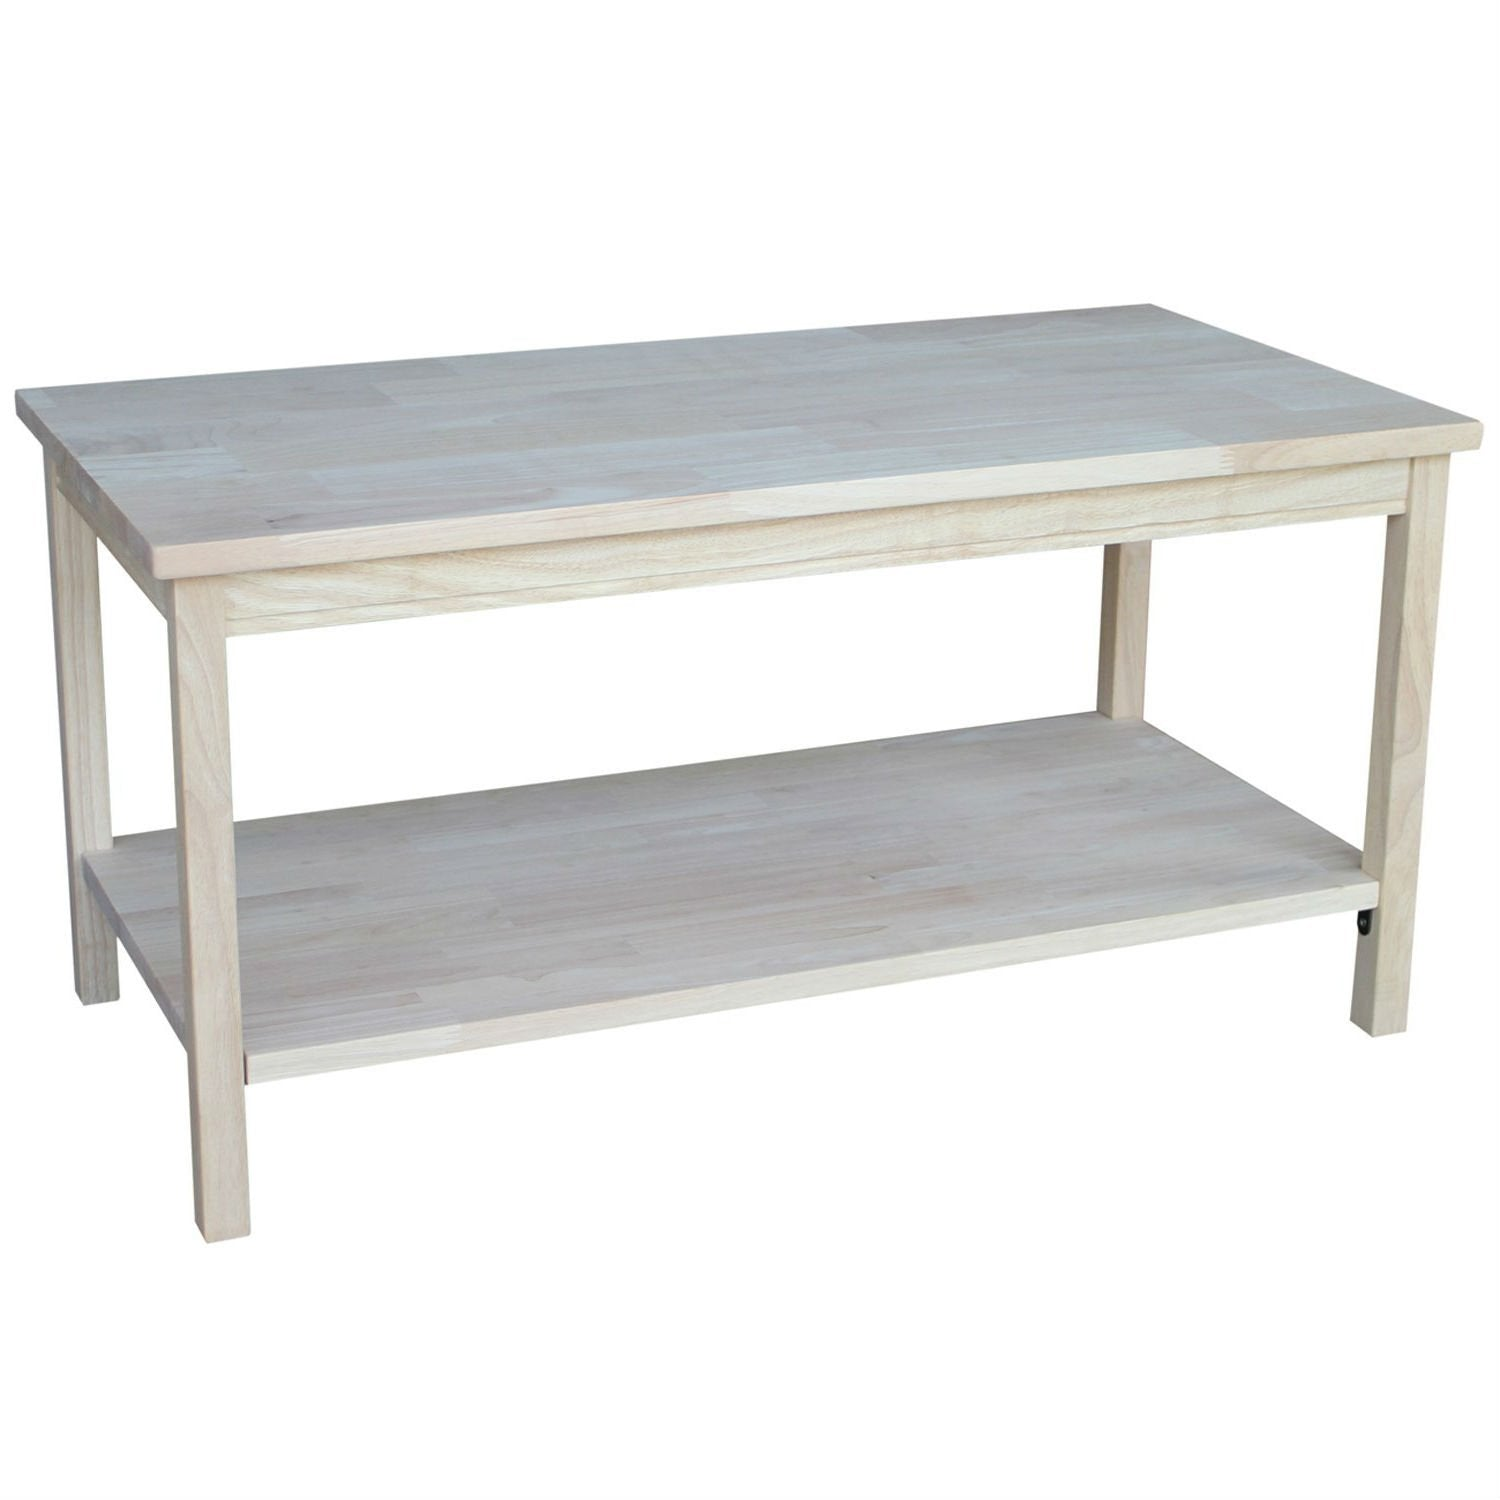 Unfinished Solid Wood Rectangular Coffee Table with Bottom Shelf